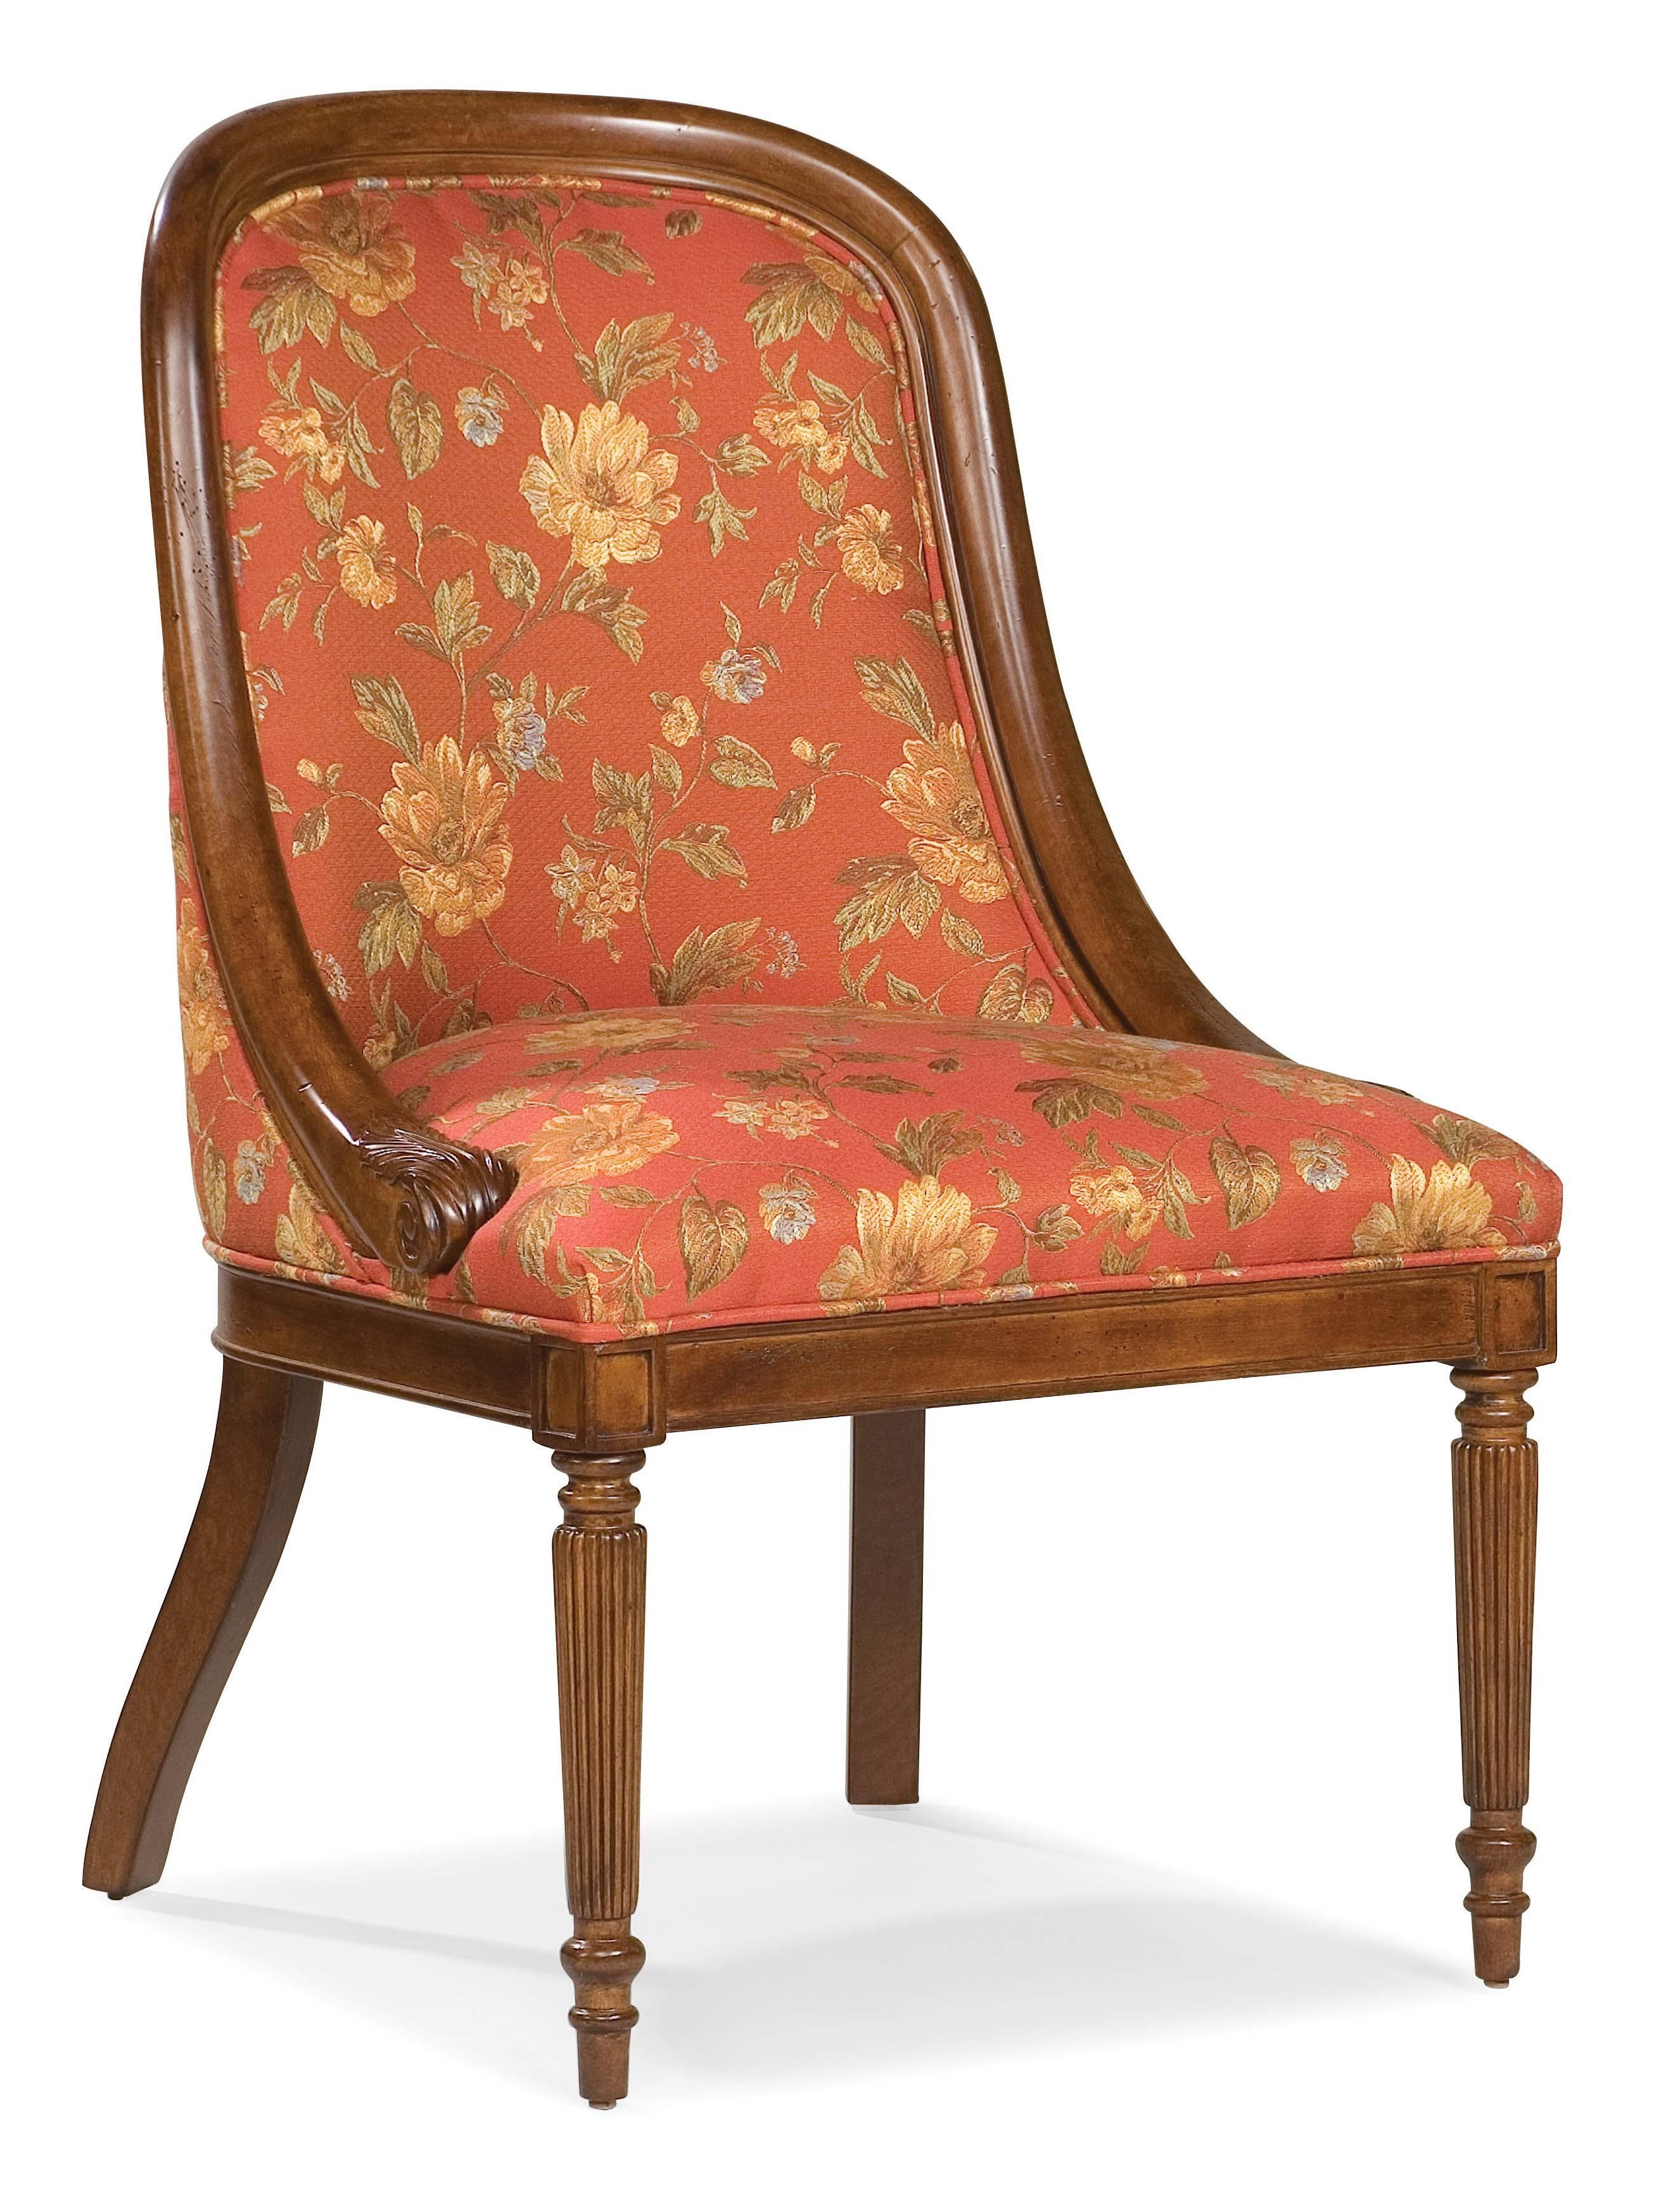 Fairfield Chairs Exposed Wood Chair - Item Number: 5466-05